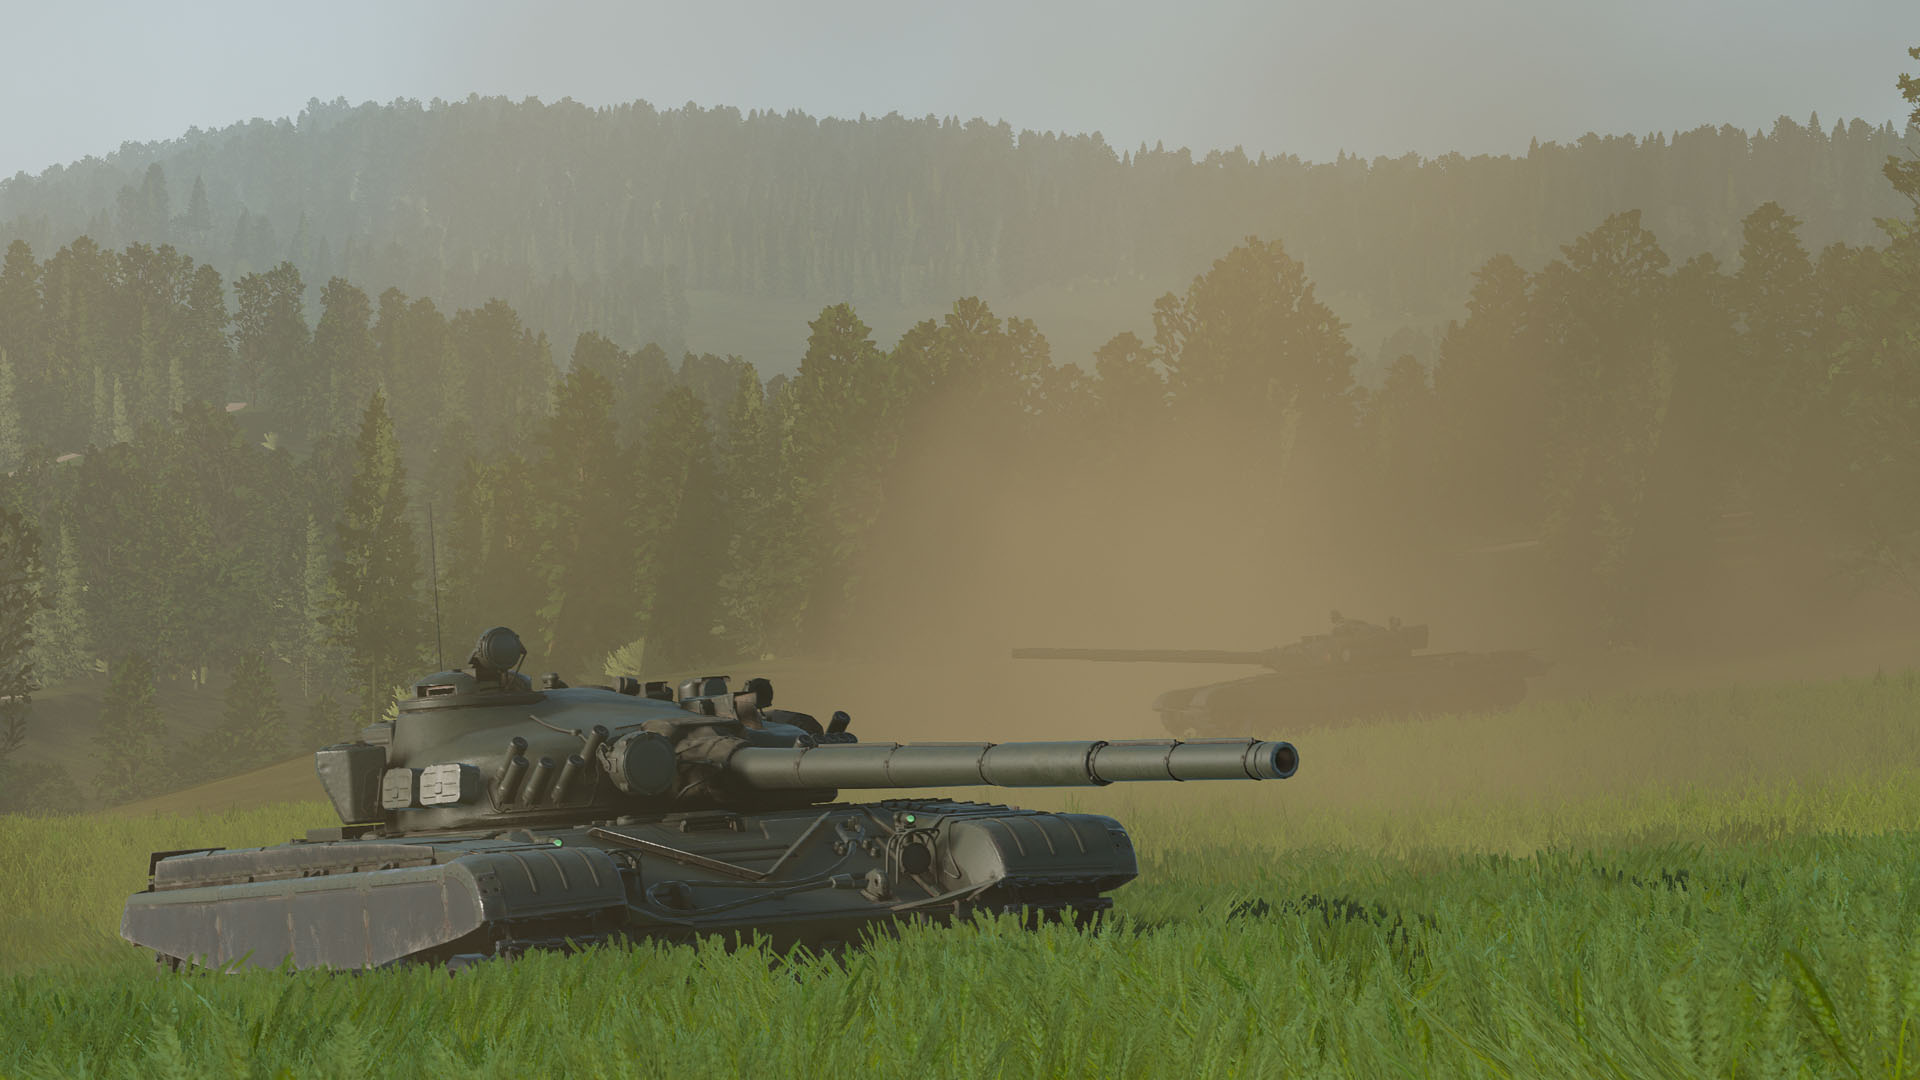 T-72M1 group in combat